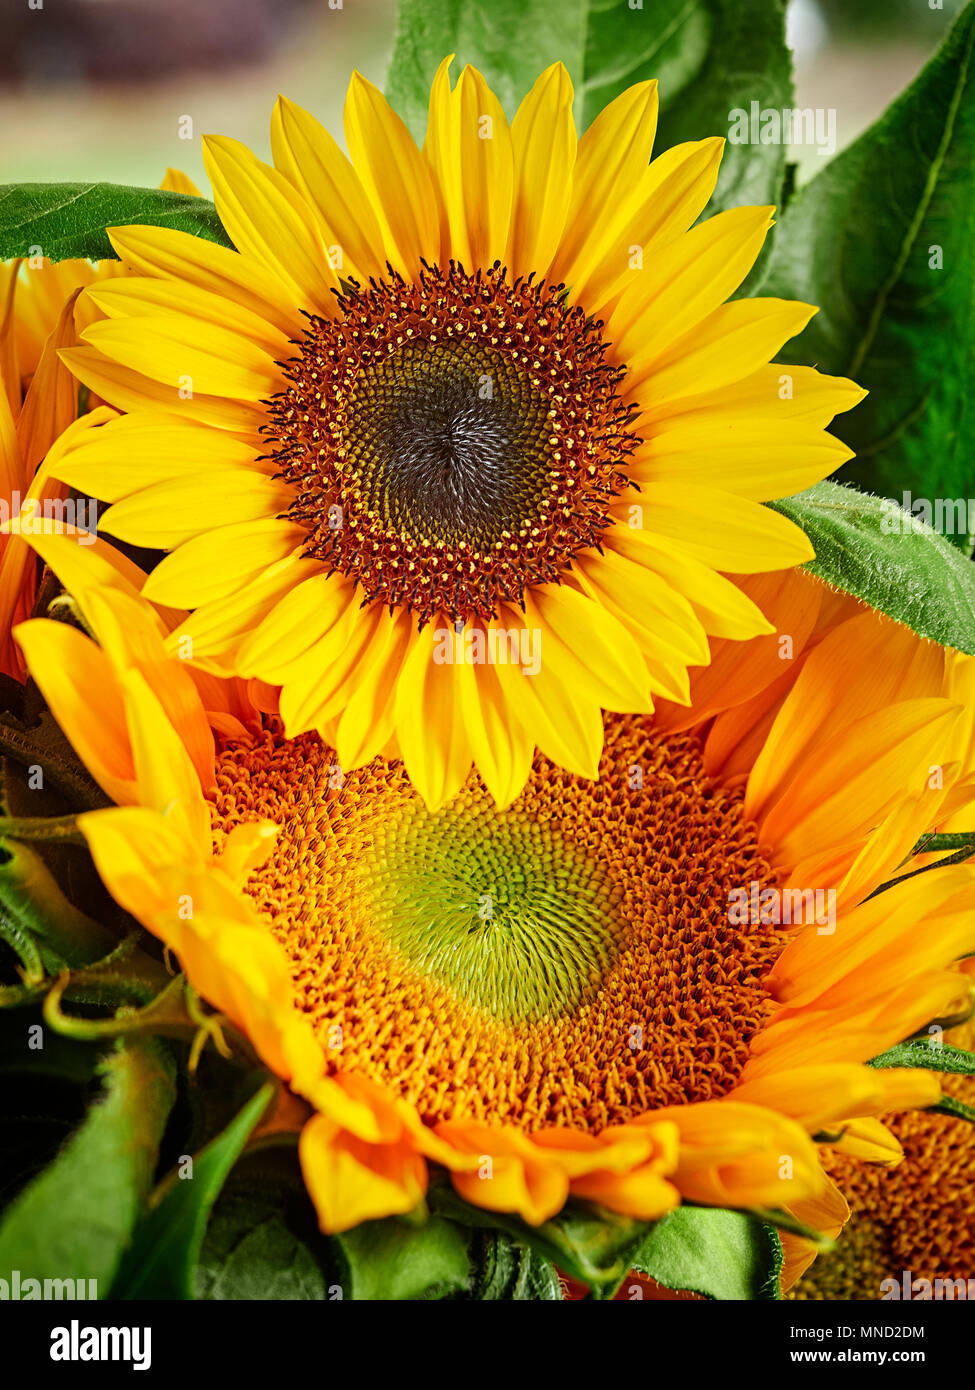 Sunflowers in a vase, close up. - Stock Image